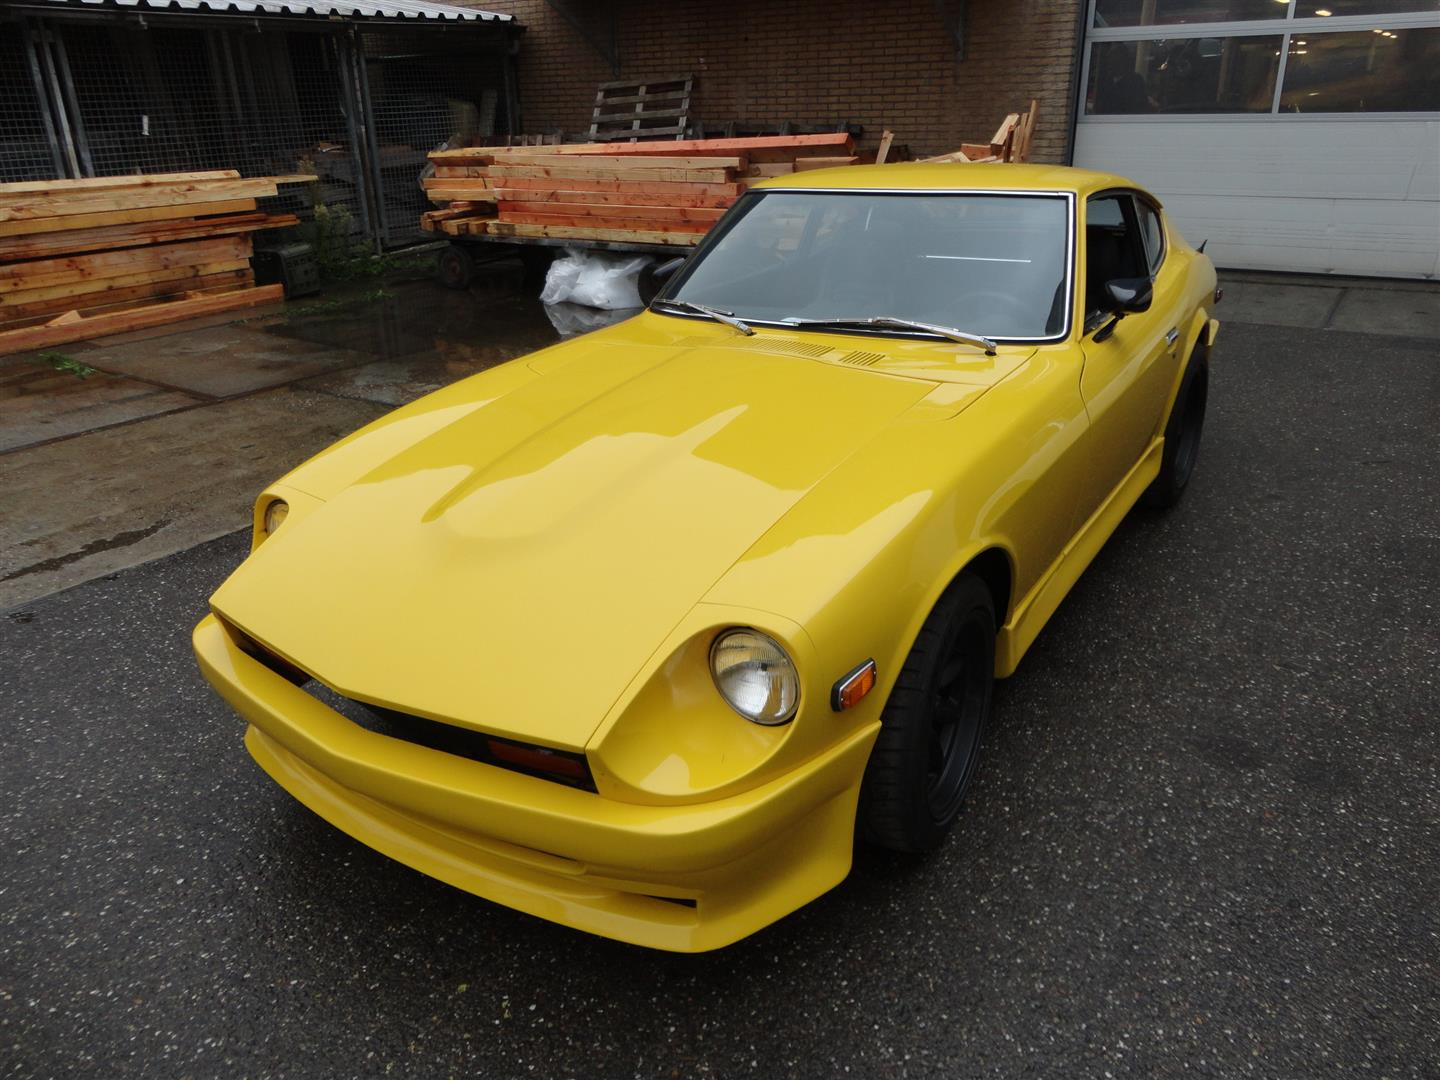 datsun 240z bright yellow joop stolze classic cars. Black Bedroom Furniture Sets. Home Design Ideas